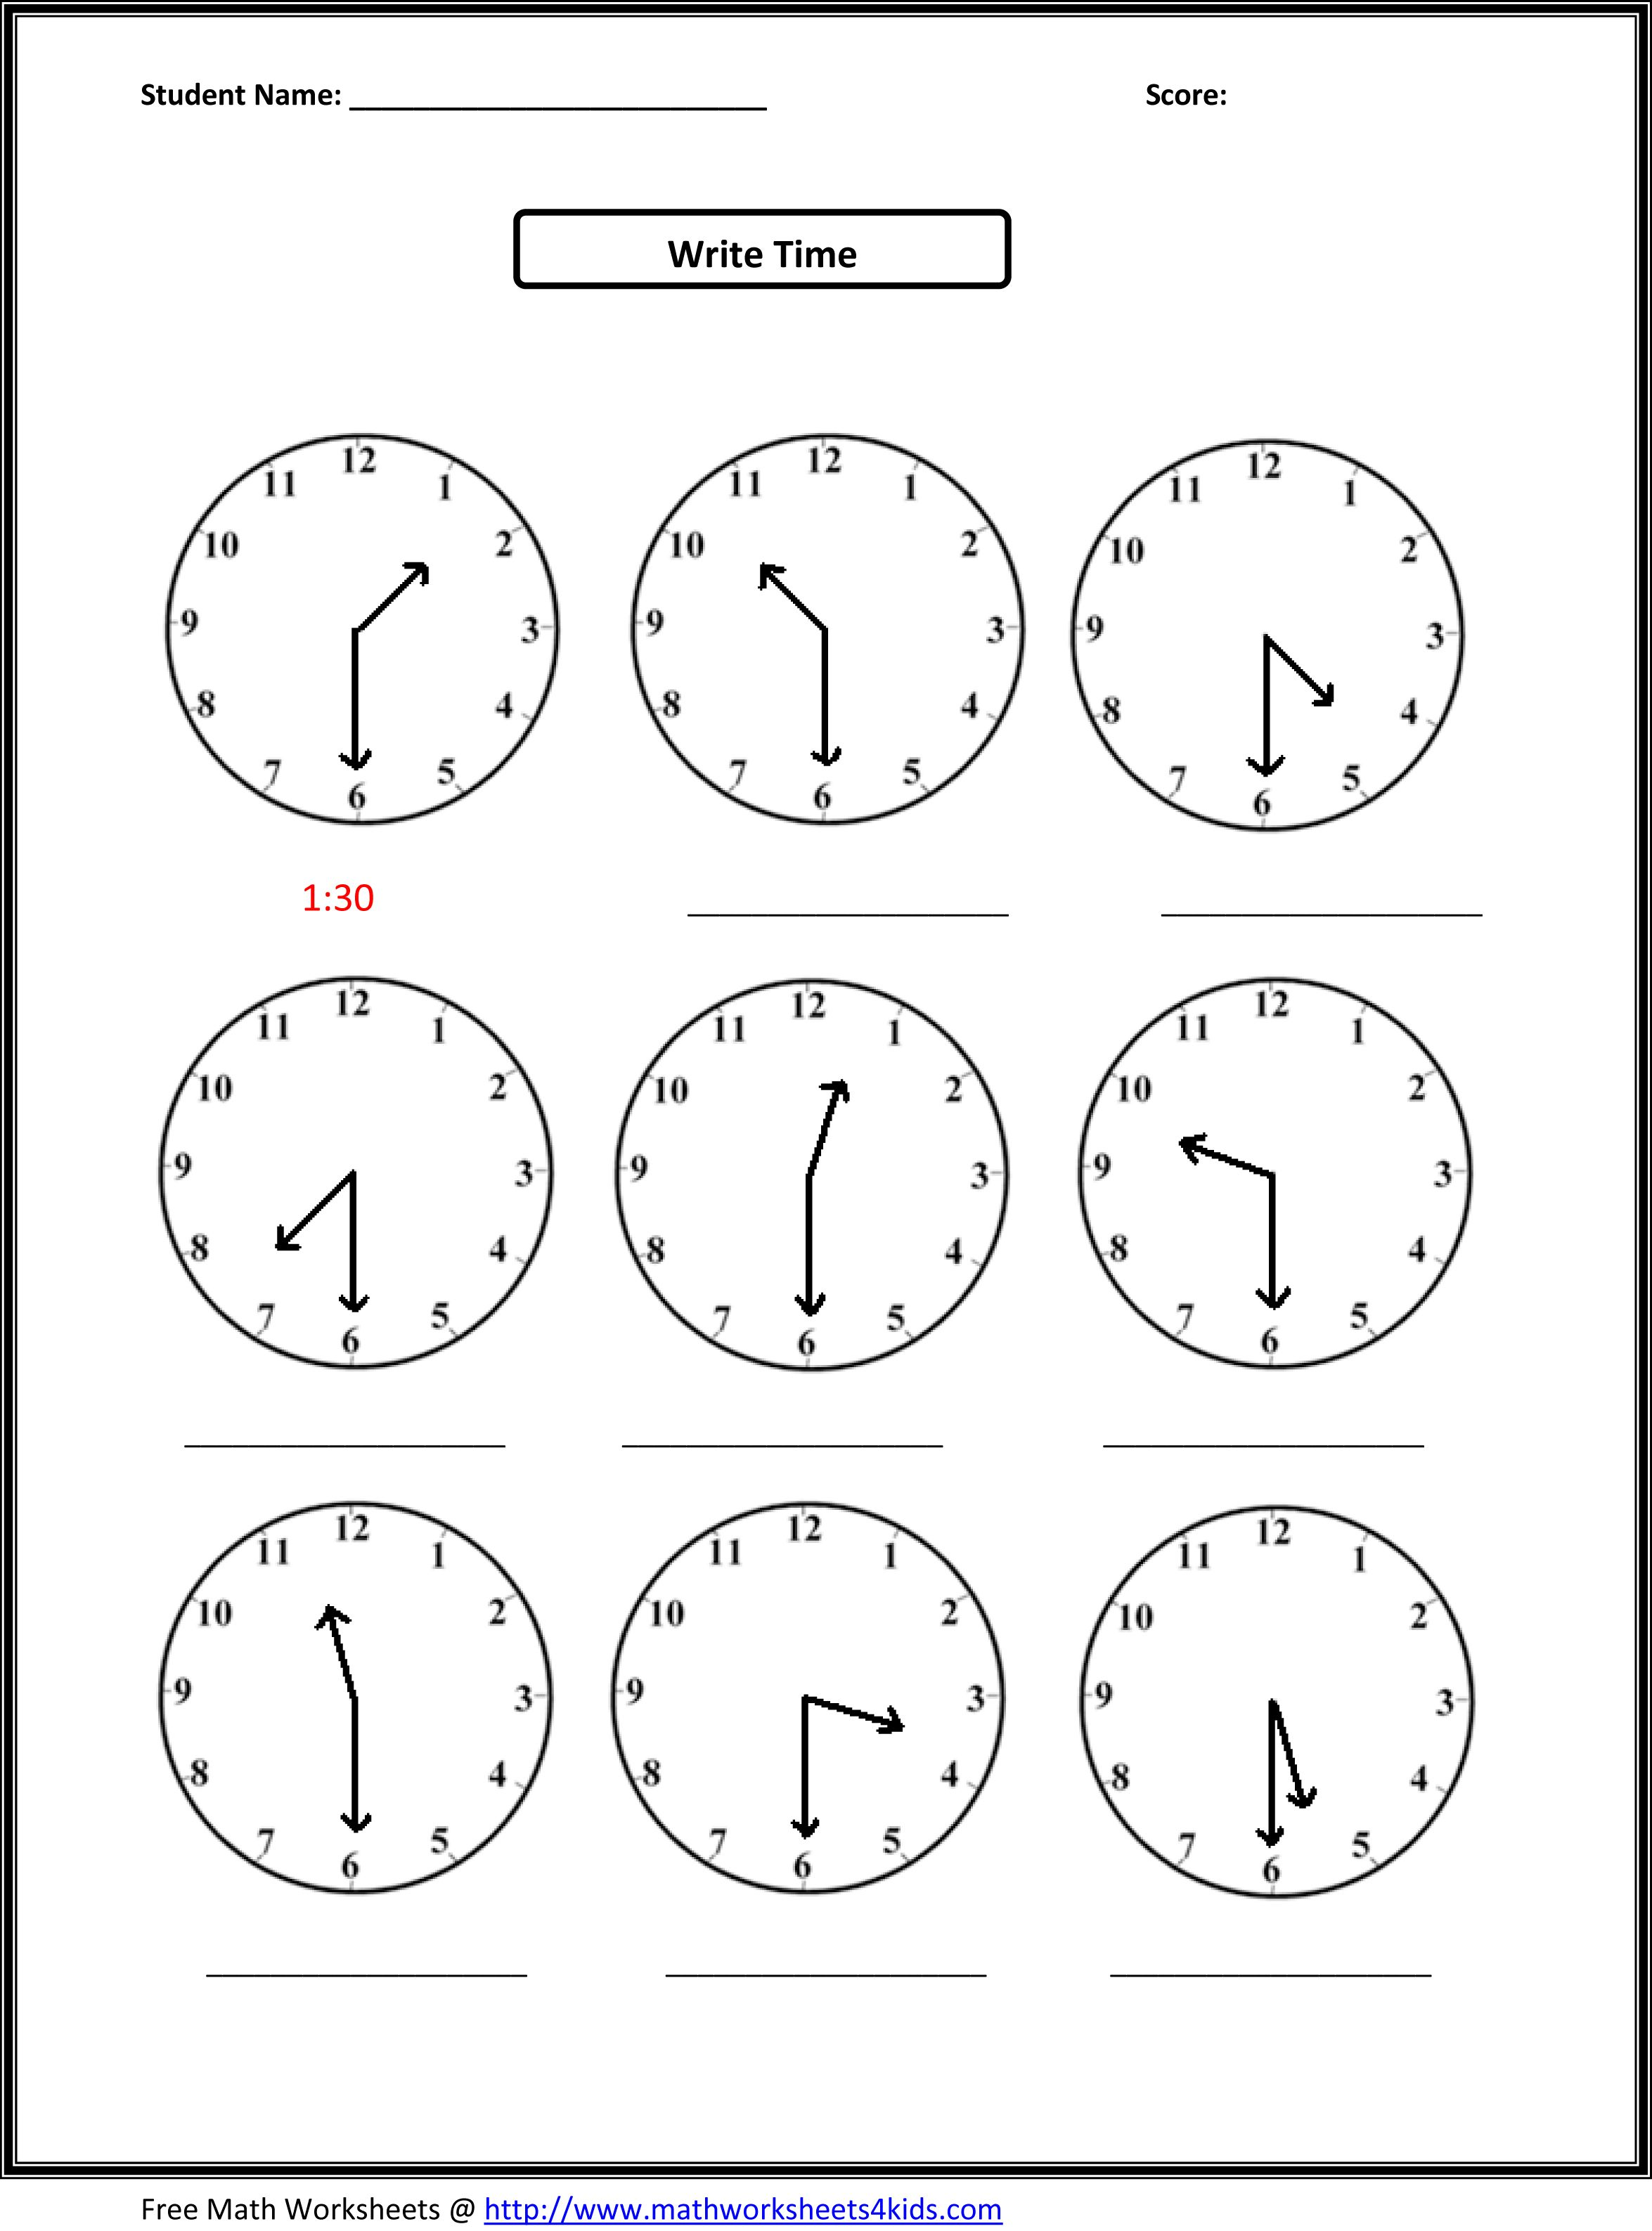 Proatmealus  Surprising Worksheet On Time For Grade   Reocurent With Great Free Printable Telling Time Worksheets Nd Grade  Reocurent With Amazing Integer Worksheets Also Phase Change Worksheet In Addition Free Printable Multiplication Worksheets And Adjectives Worksheets As Well As Angles Worksheet Additionally Letter B Worksheets From Reocurentcom With Proatmealus  Great Worksheet On Time For Grade   Reocurent With Amazing Free Printable Telling Time Worksheets Nd Grade  Reocurent And Surprising Integer Worksheets Also Phase Change Worksheet In Addition Free Printable Multiplication Worksheets From Reocurentcom